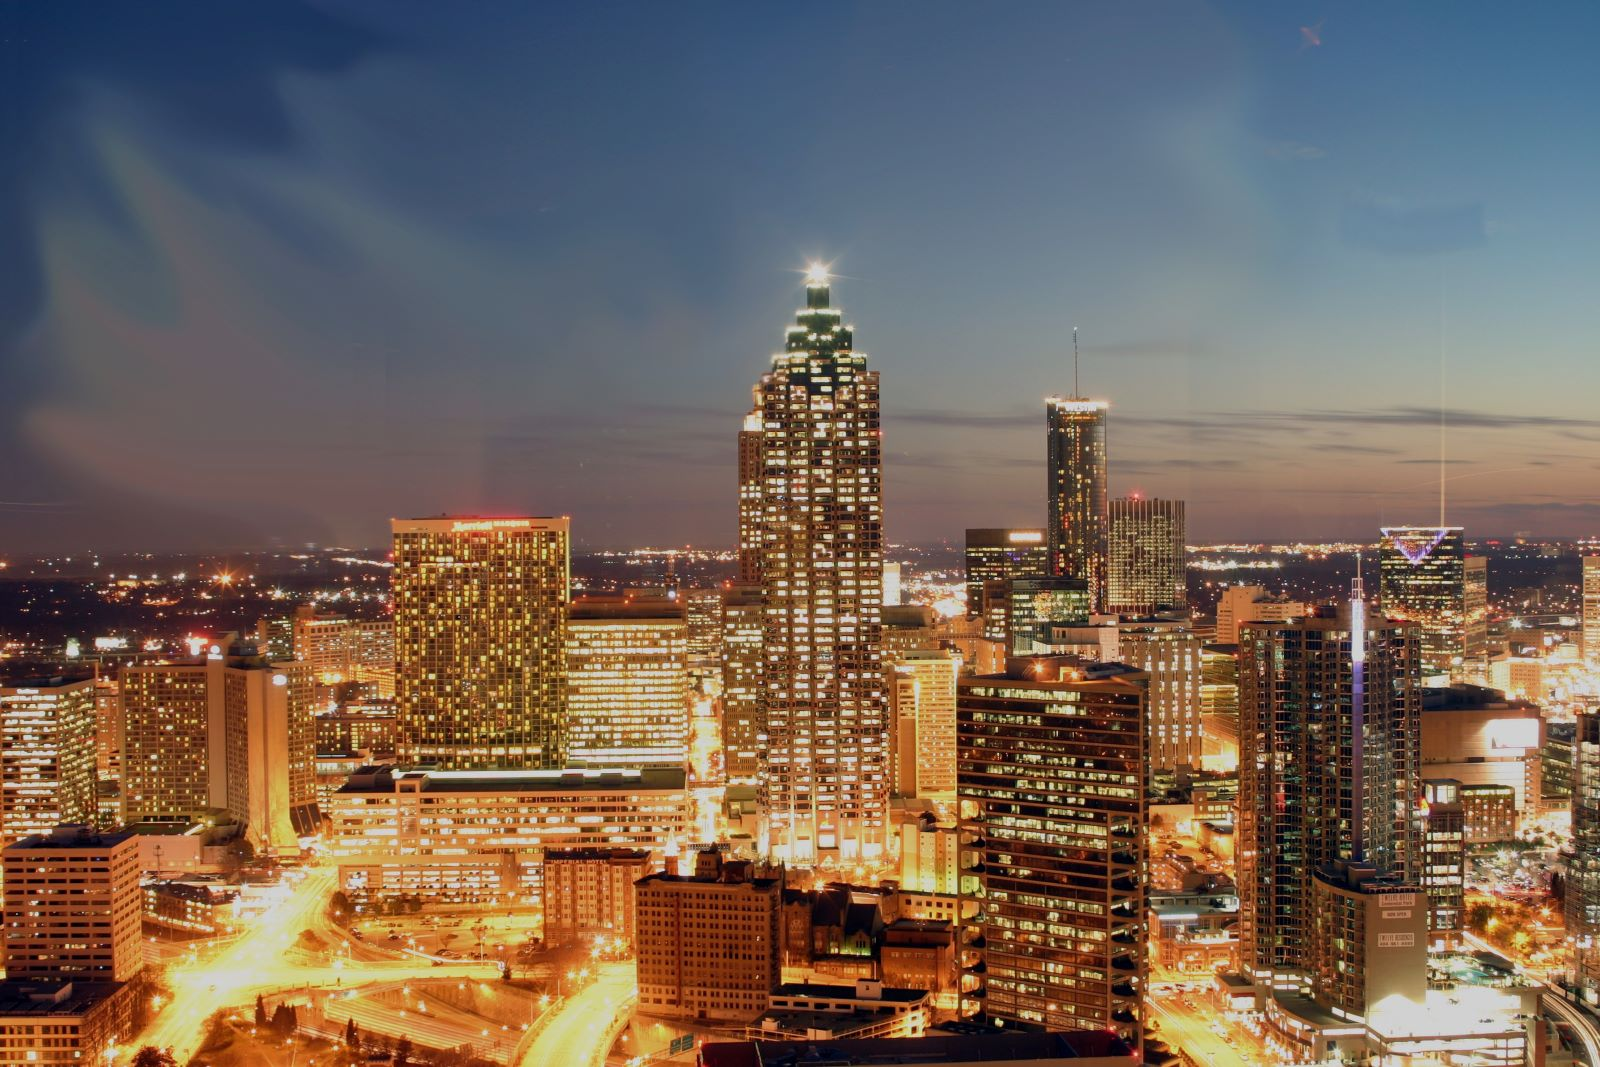 Downtown Atlanta at dusk with the city all lit up, dark blue skies with the sunset at the far edge of the city